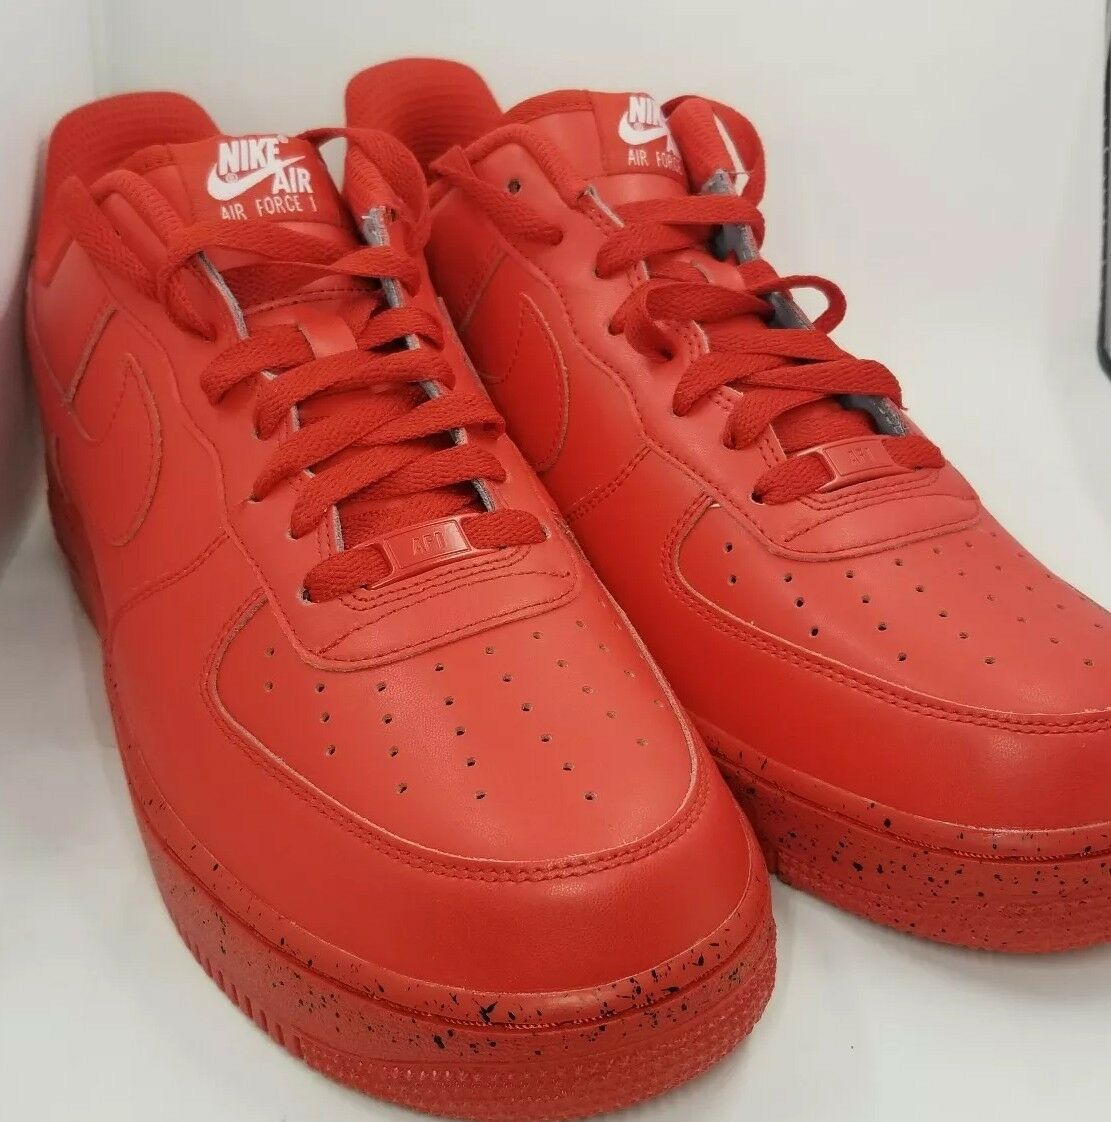 NIKE ID AIR FORCE 1 LOW ID NIKE RED SIZE 11.5 AQ3774-991 332a88